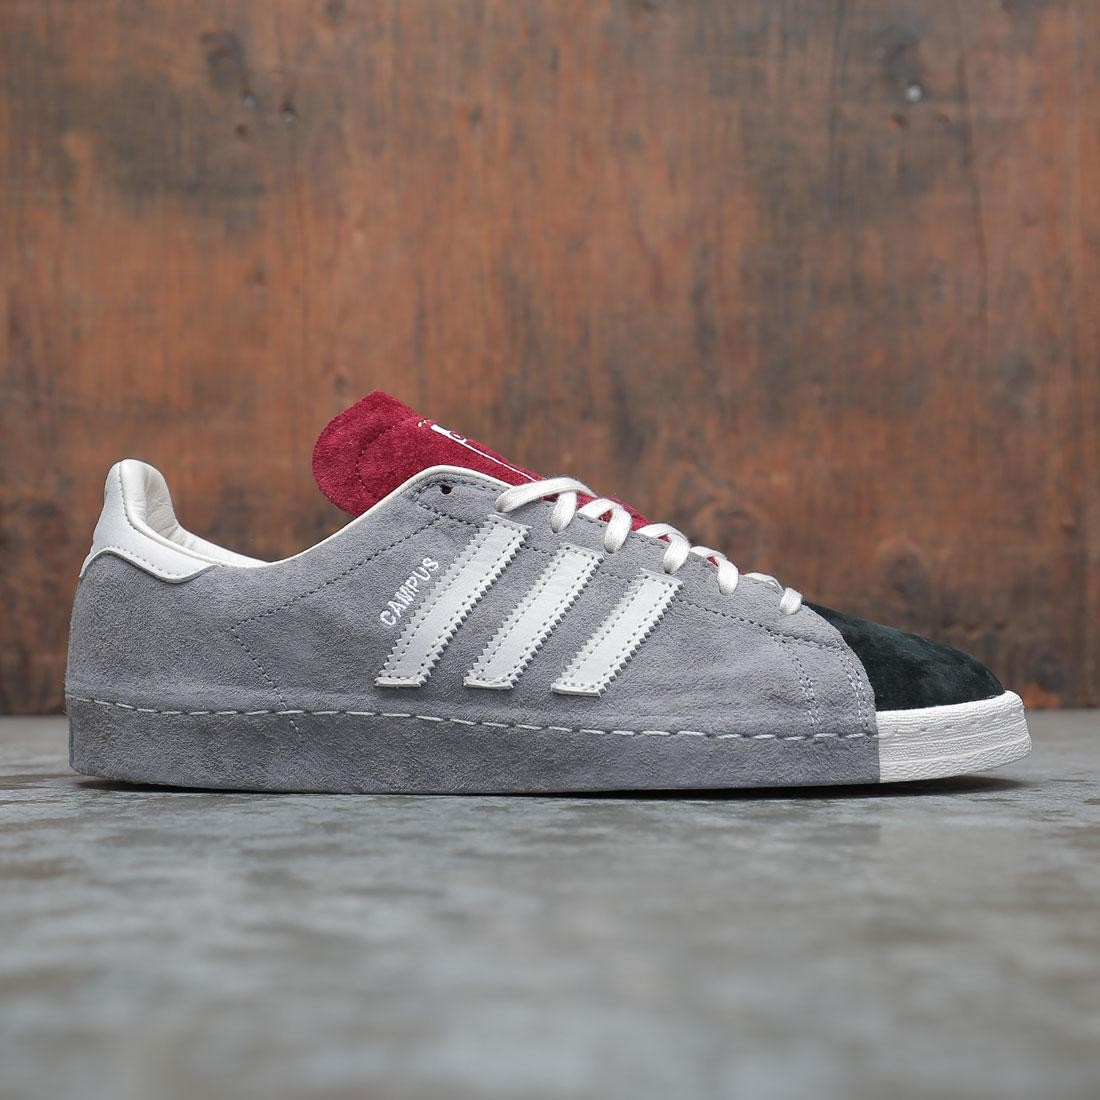 Adidas x Recouture Men Campus 80s Shun Hirose (gray / chalk white / core black)